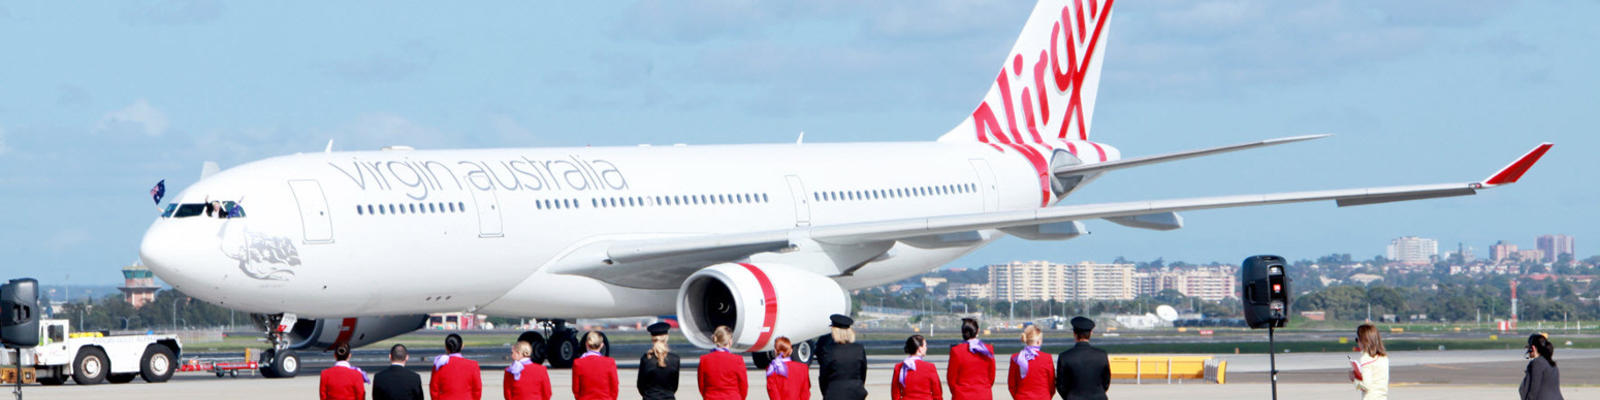 Virgin crew members standing on a red carpet looking at one of Virgin Australia's planes